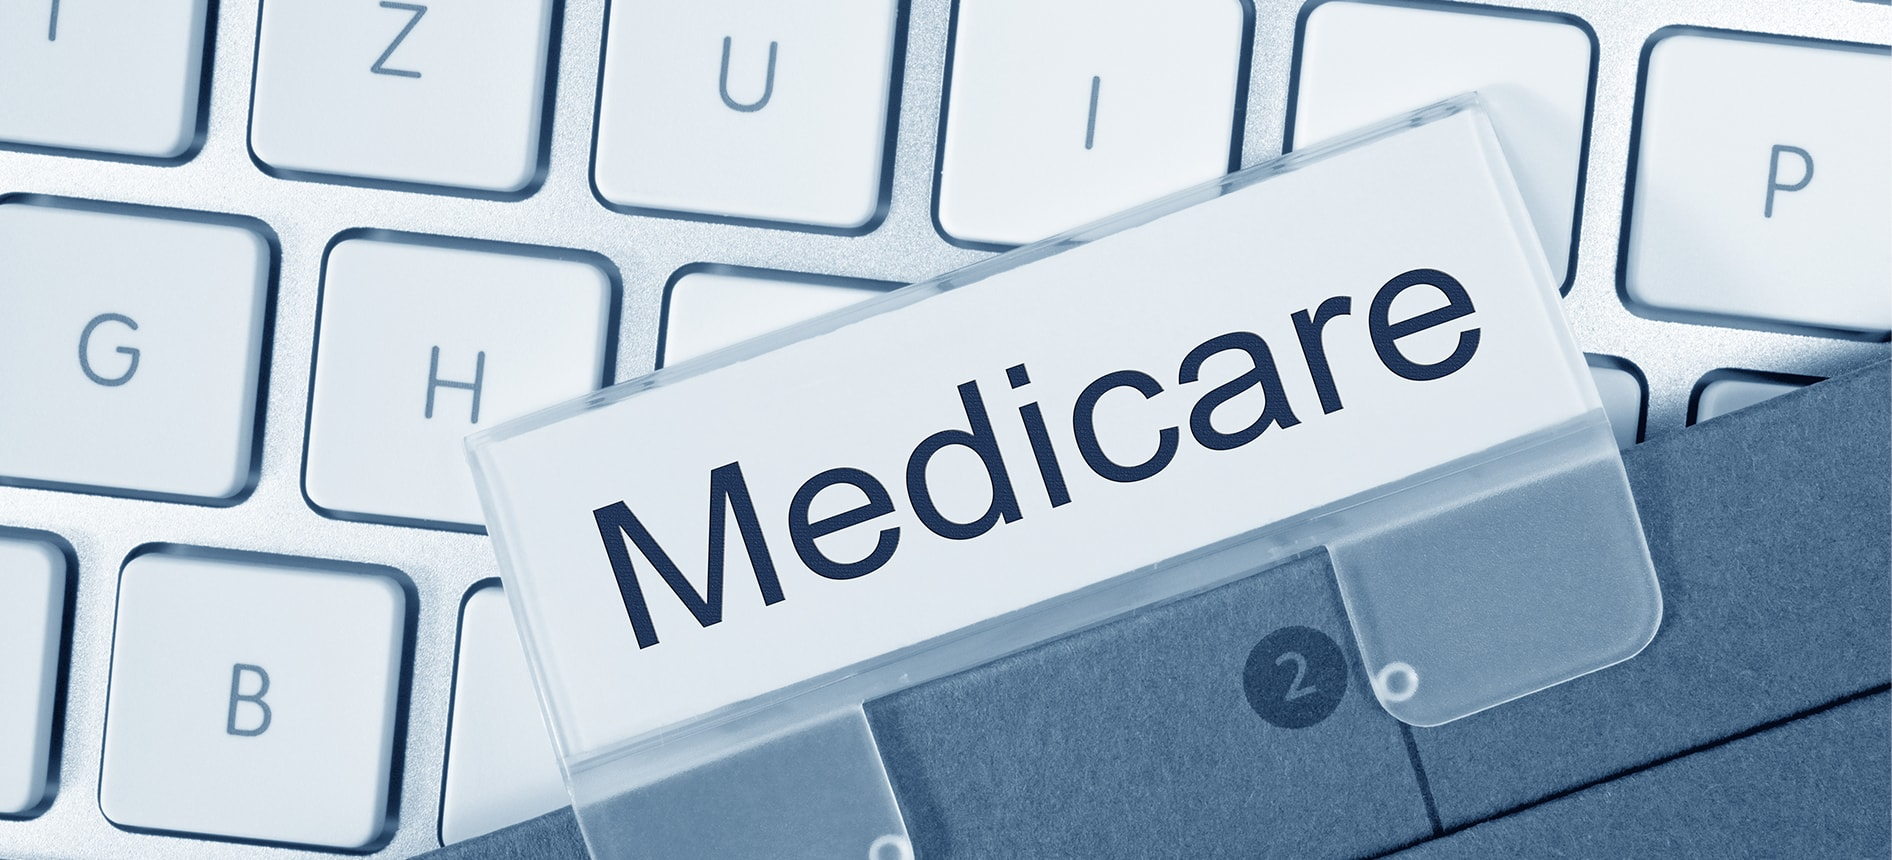 CMS Announces Medicare Fraud Crackdown image